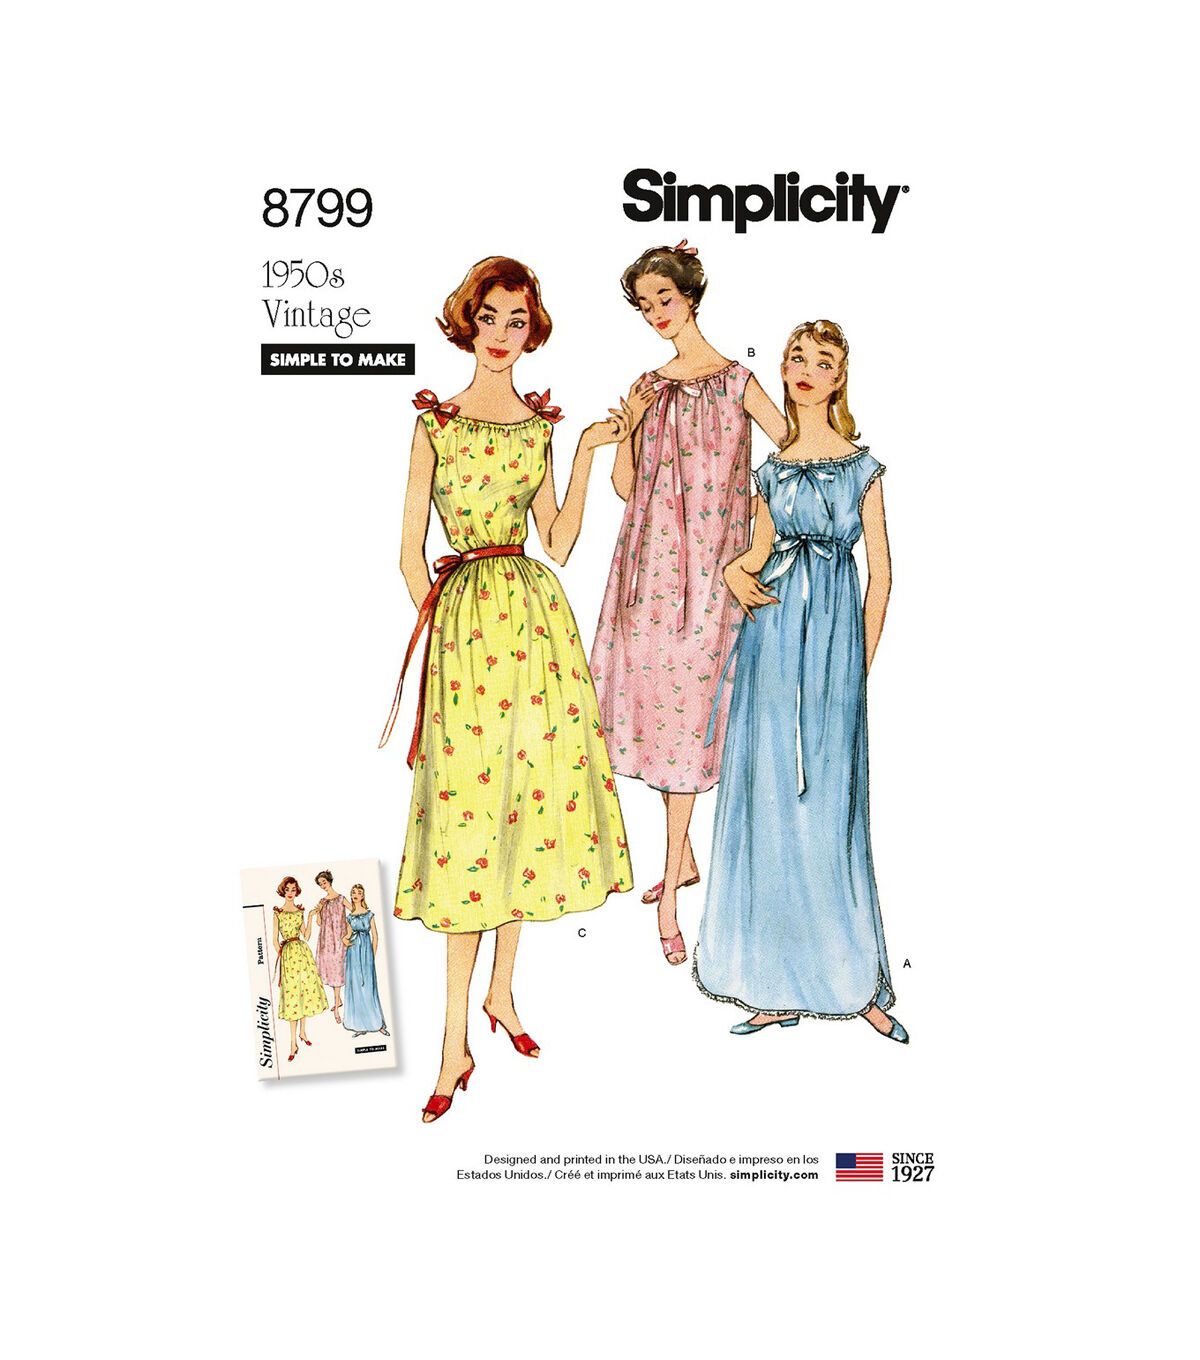 1950s Sewing Patterns | Dresses, Skirts, Tops, Mens Simplicity Pattern 8799 Misses Vintage Nightgowns - Size A XS - S - M - L - XL $13.77 AT vintagedancer.com